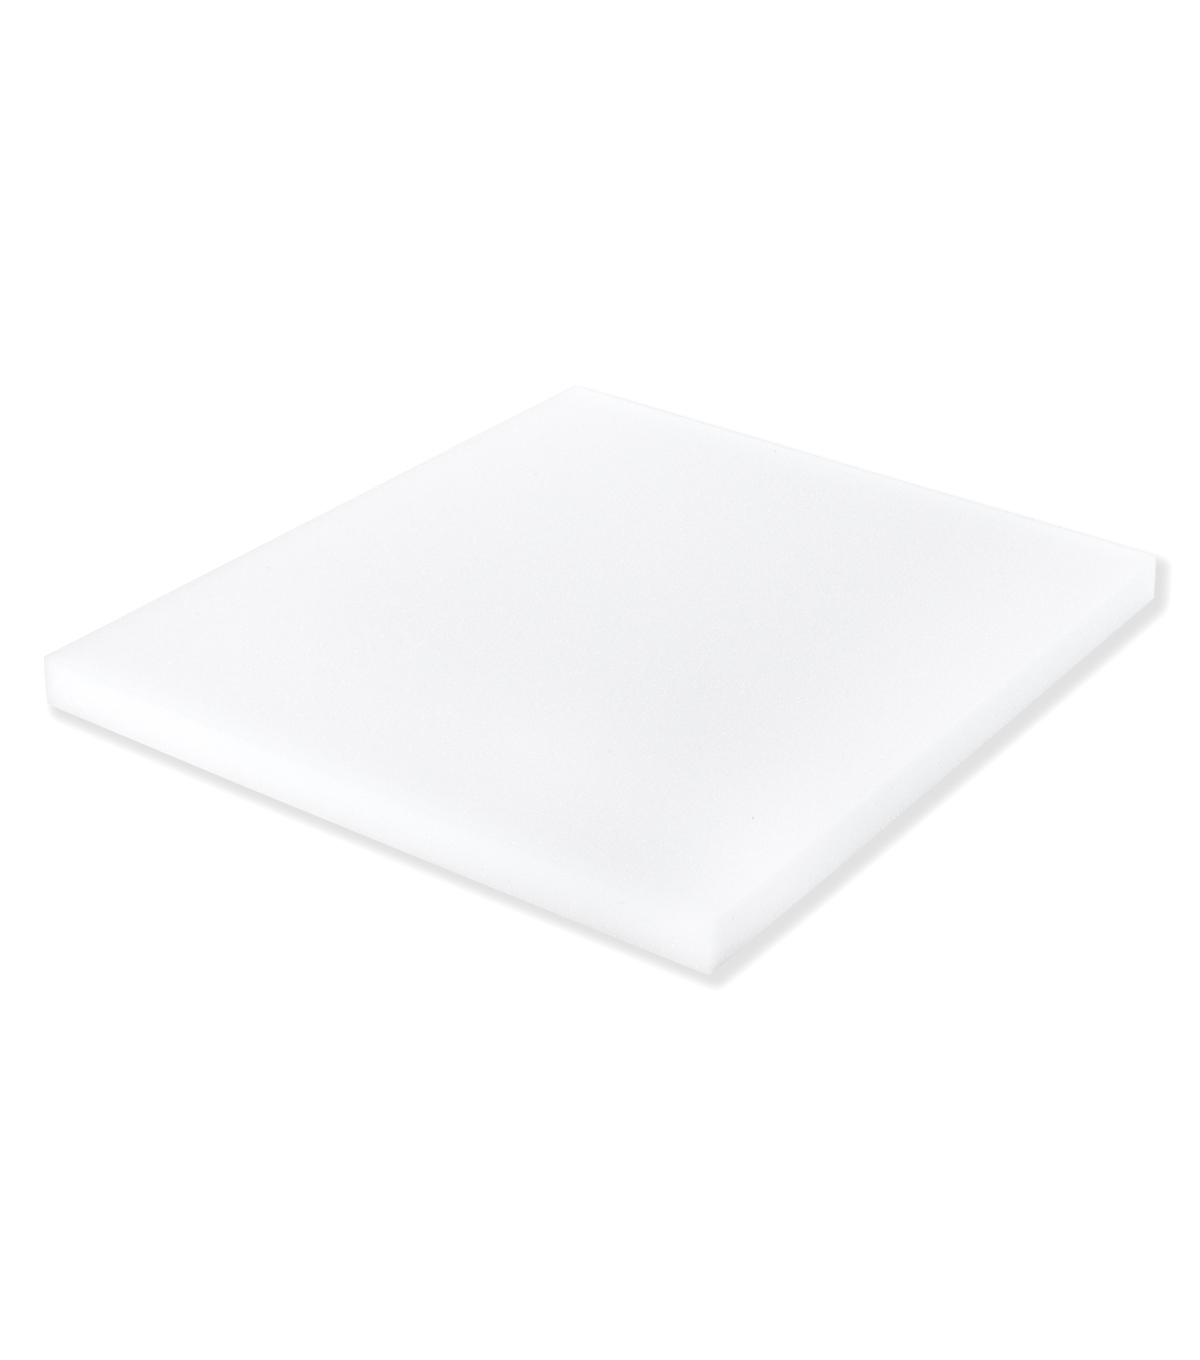 Airtex Regular Density Chair Pad-15\u0022x17\u0022x1\u0022